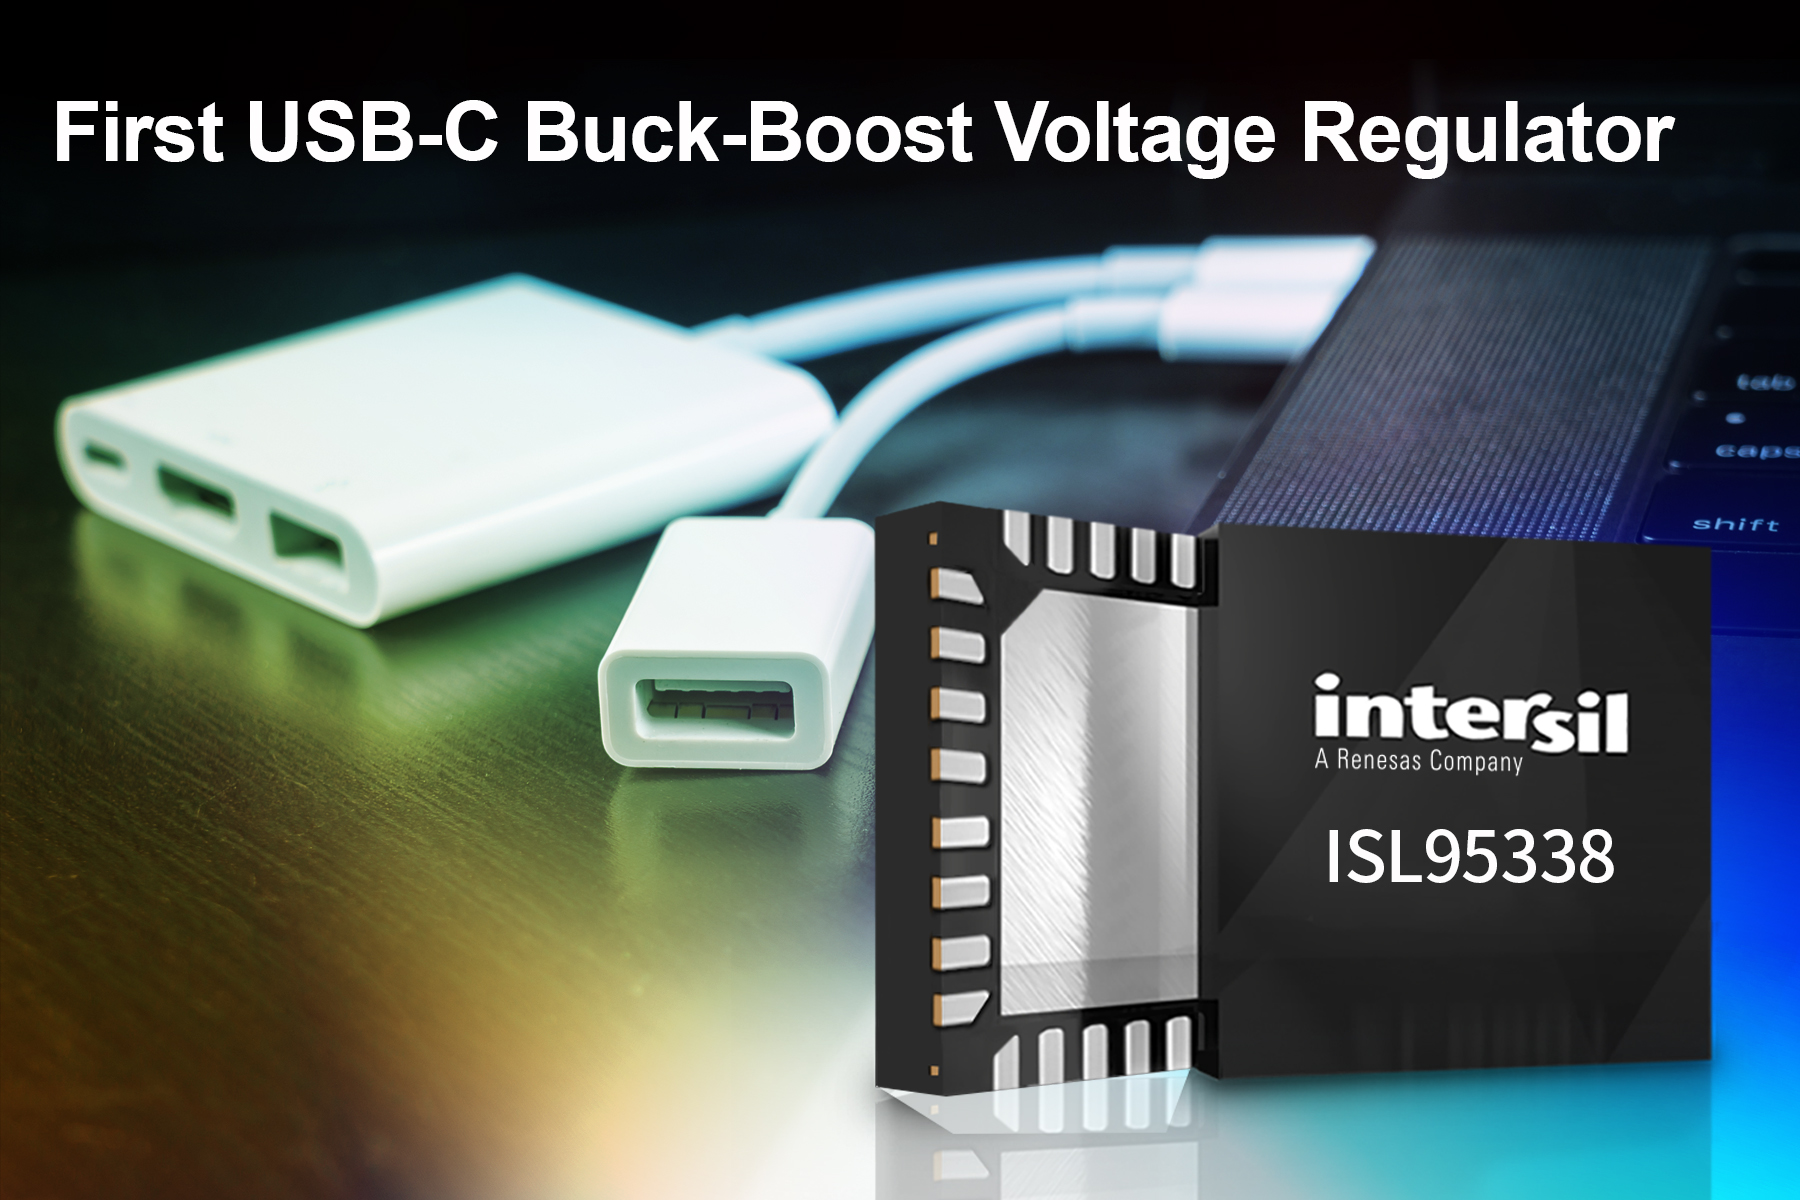 Single-chip ISL95338 Replaces two Converters, Enables USB PD3.0 Bidirectional Voltage Regulation